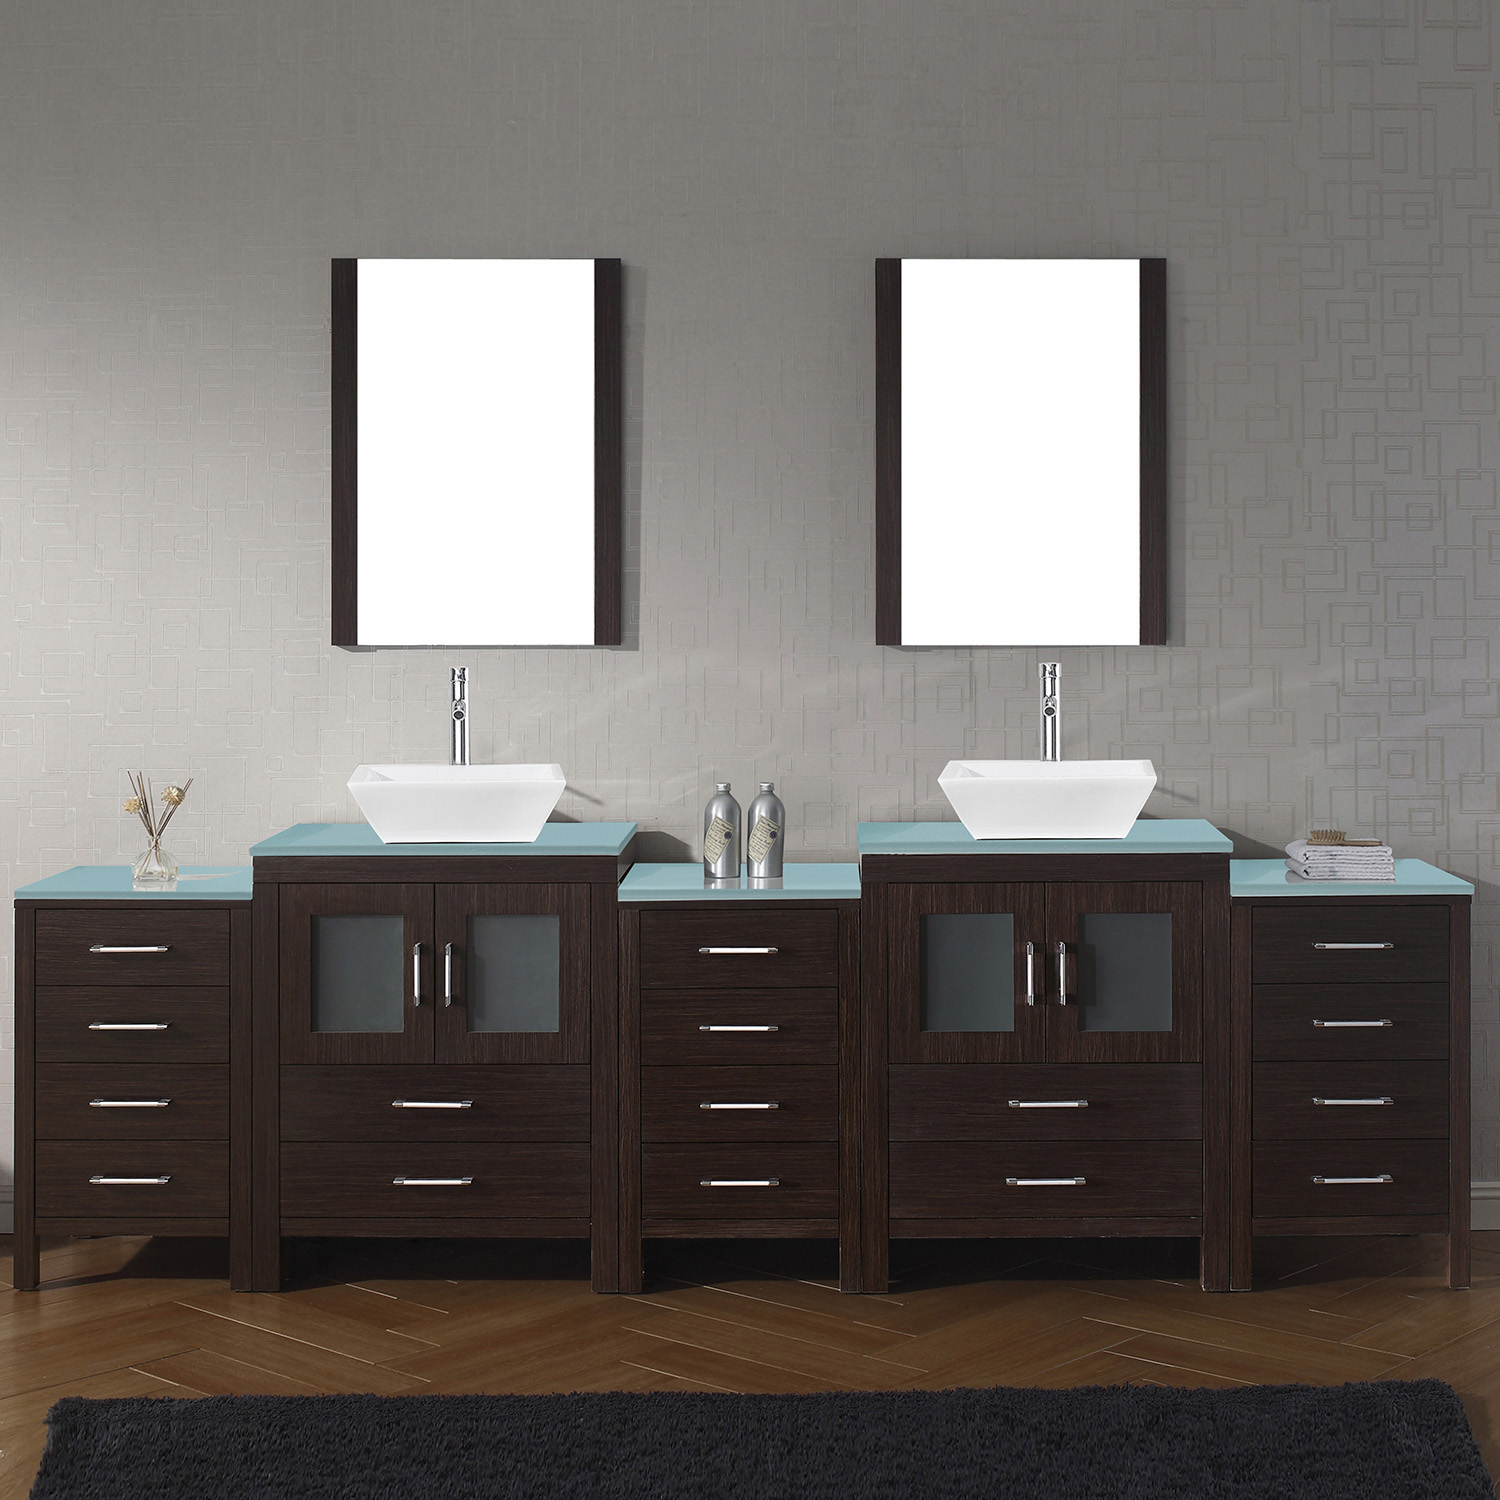 "110"" Double Bath Vanity in Espresso with Aqua Tempered Glass Top and Square Sink with Polished Chrome Faucet and Mirrors"